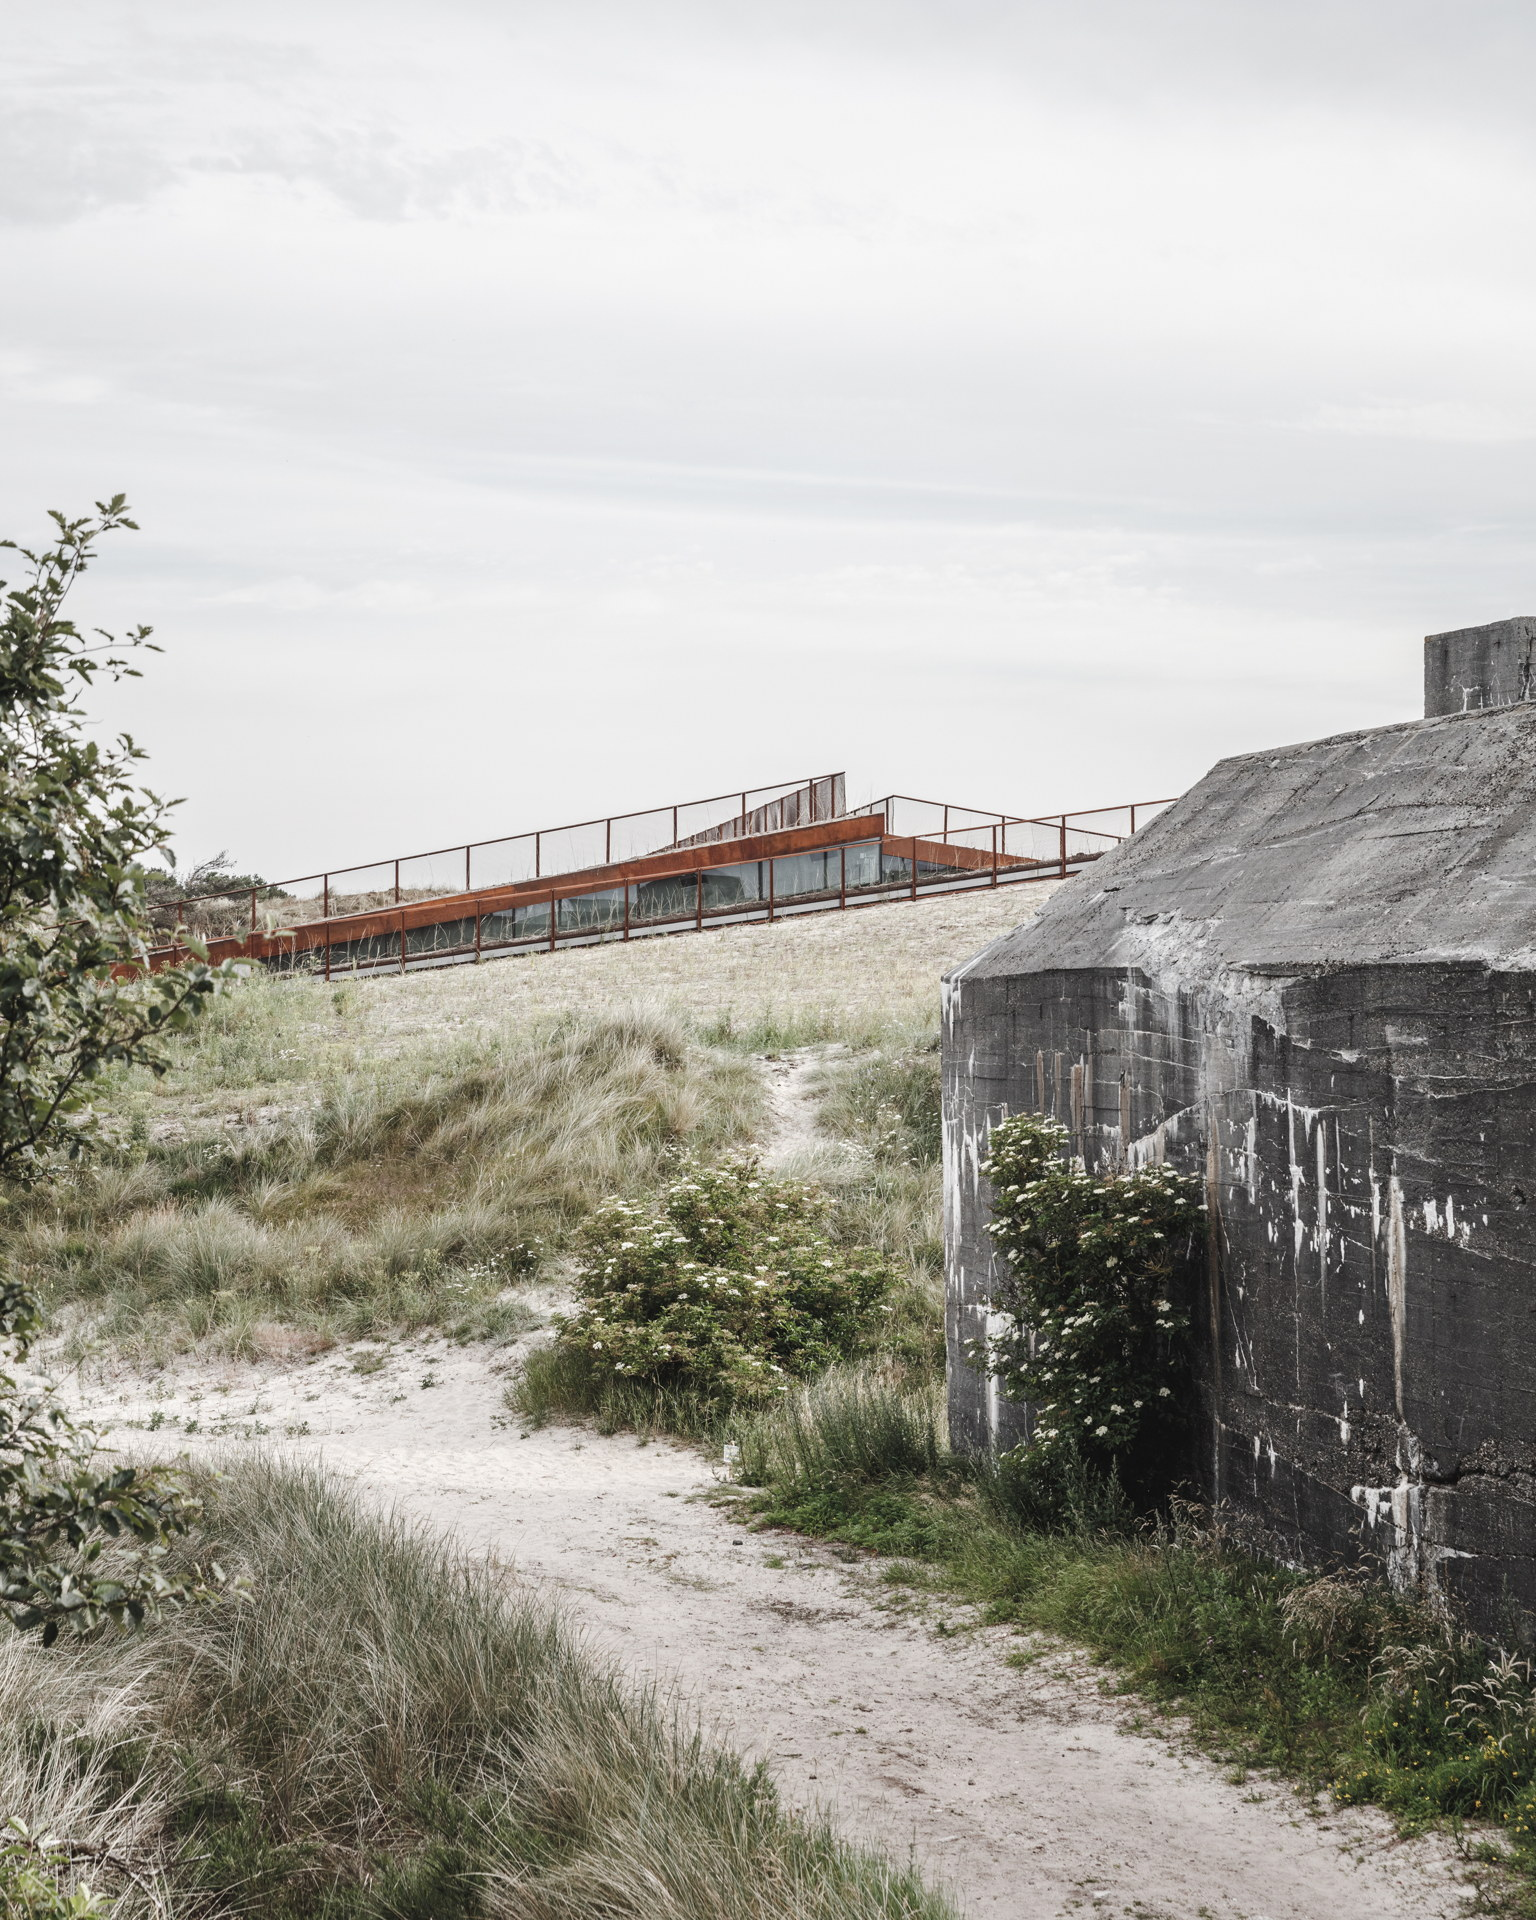 BIG-Bjarke Ingels Group: Tirpitz, the museum of the Atlantic Wall